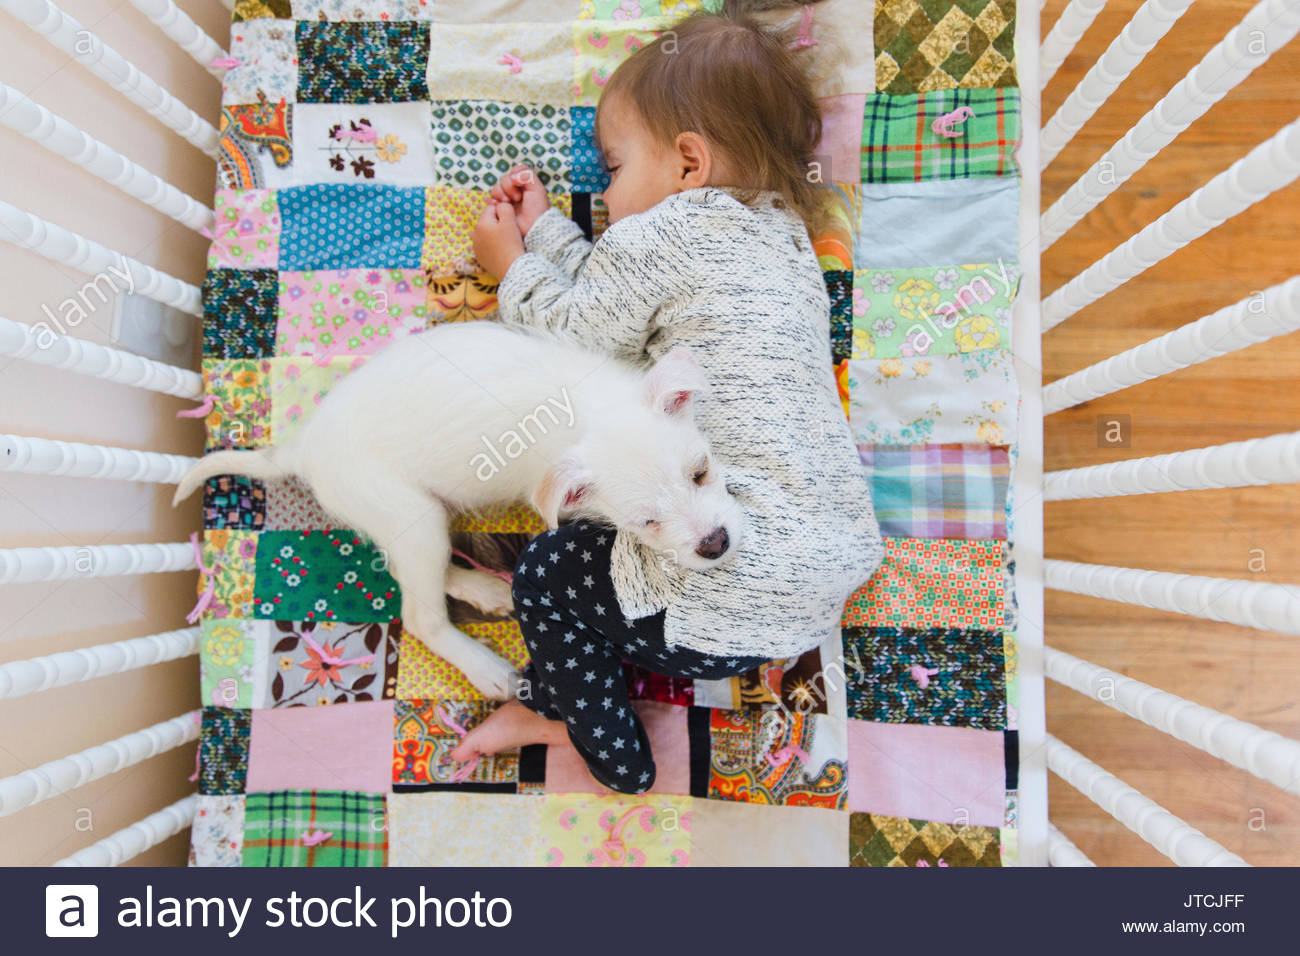 A puppy and a baby sleeping on a patchwork quilt in a cot. - Stock Image